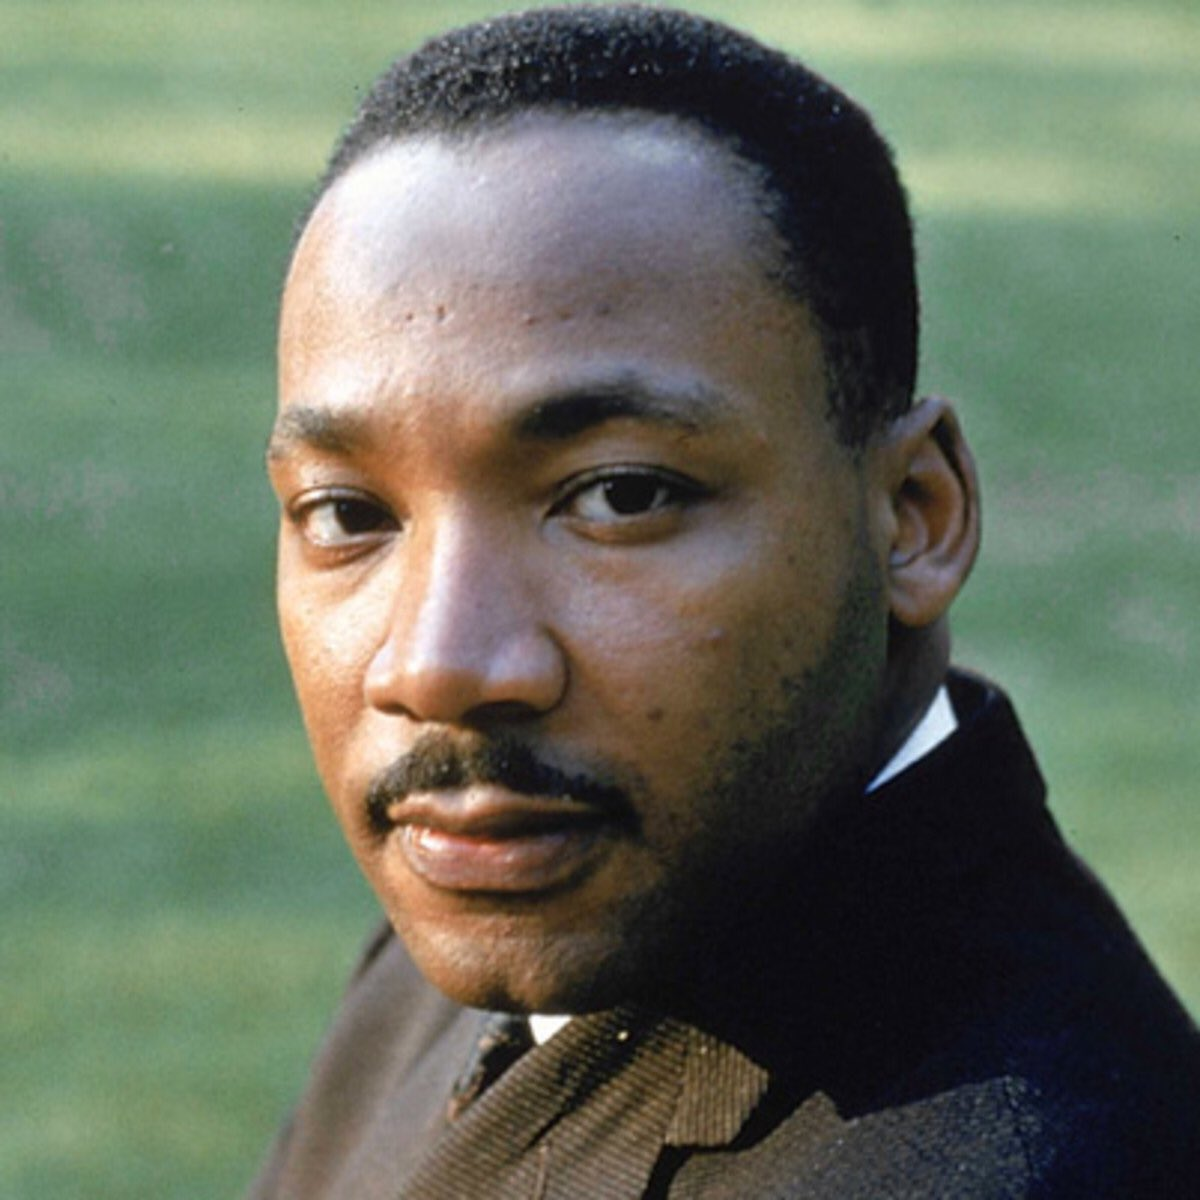 """The time is always right, to do what's right."" Thank you Martin Luther King Jr. https://t.co/kOFobiY09M"